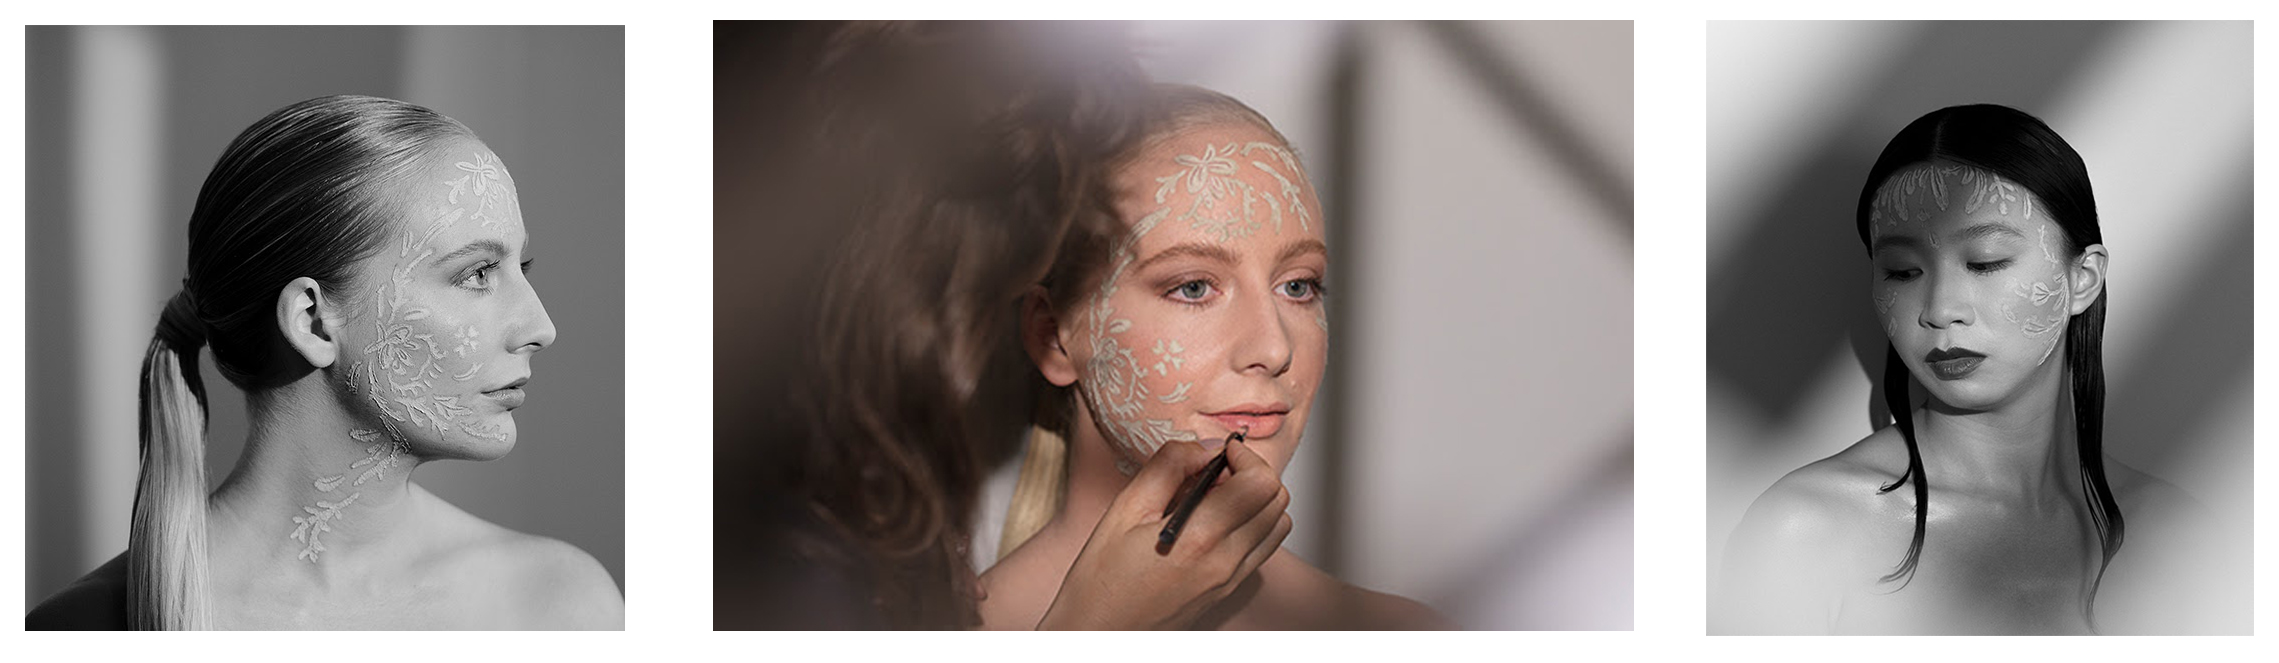 Collaborative shoot for Antipodes Skincare, a clean beauty brand, showcasing their mud-mask 'Halo'. Hair and makeup by me, illustration by Zoe Gillet.